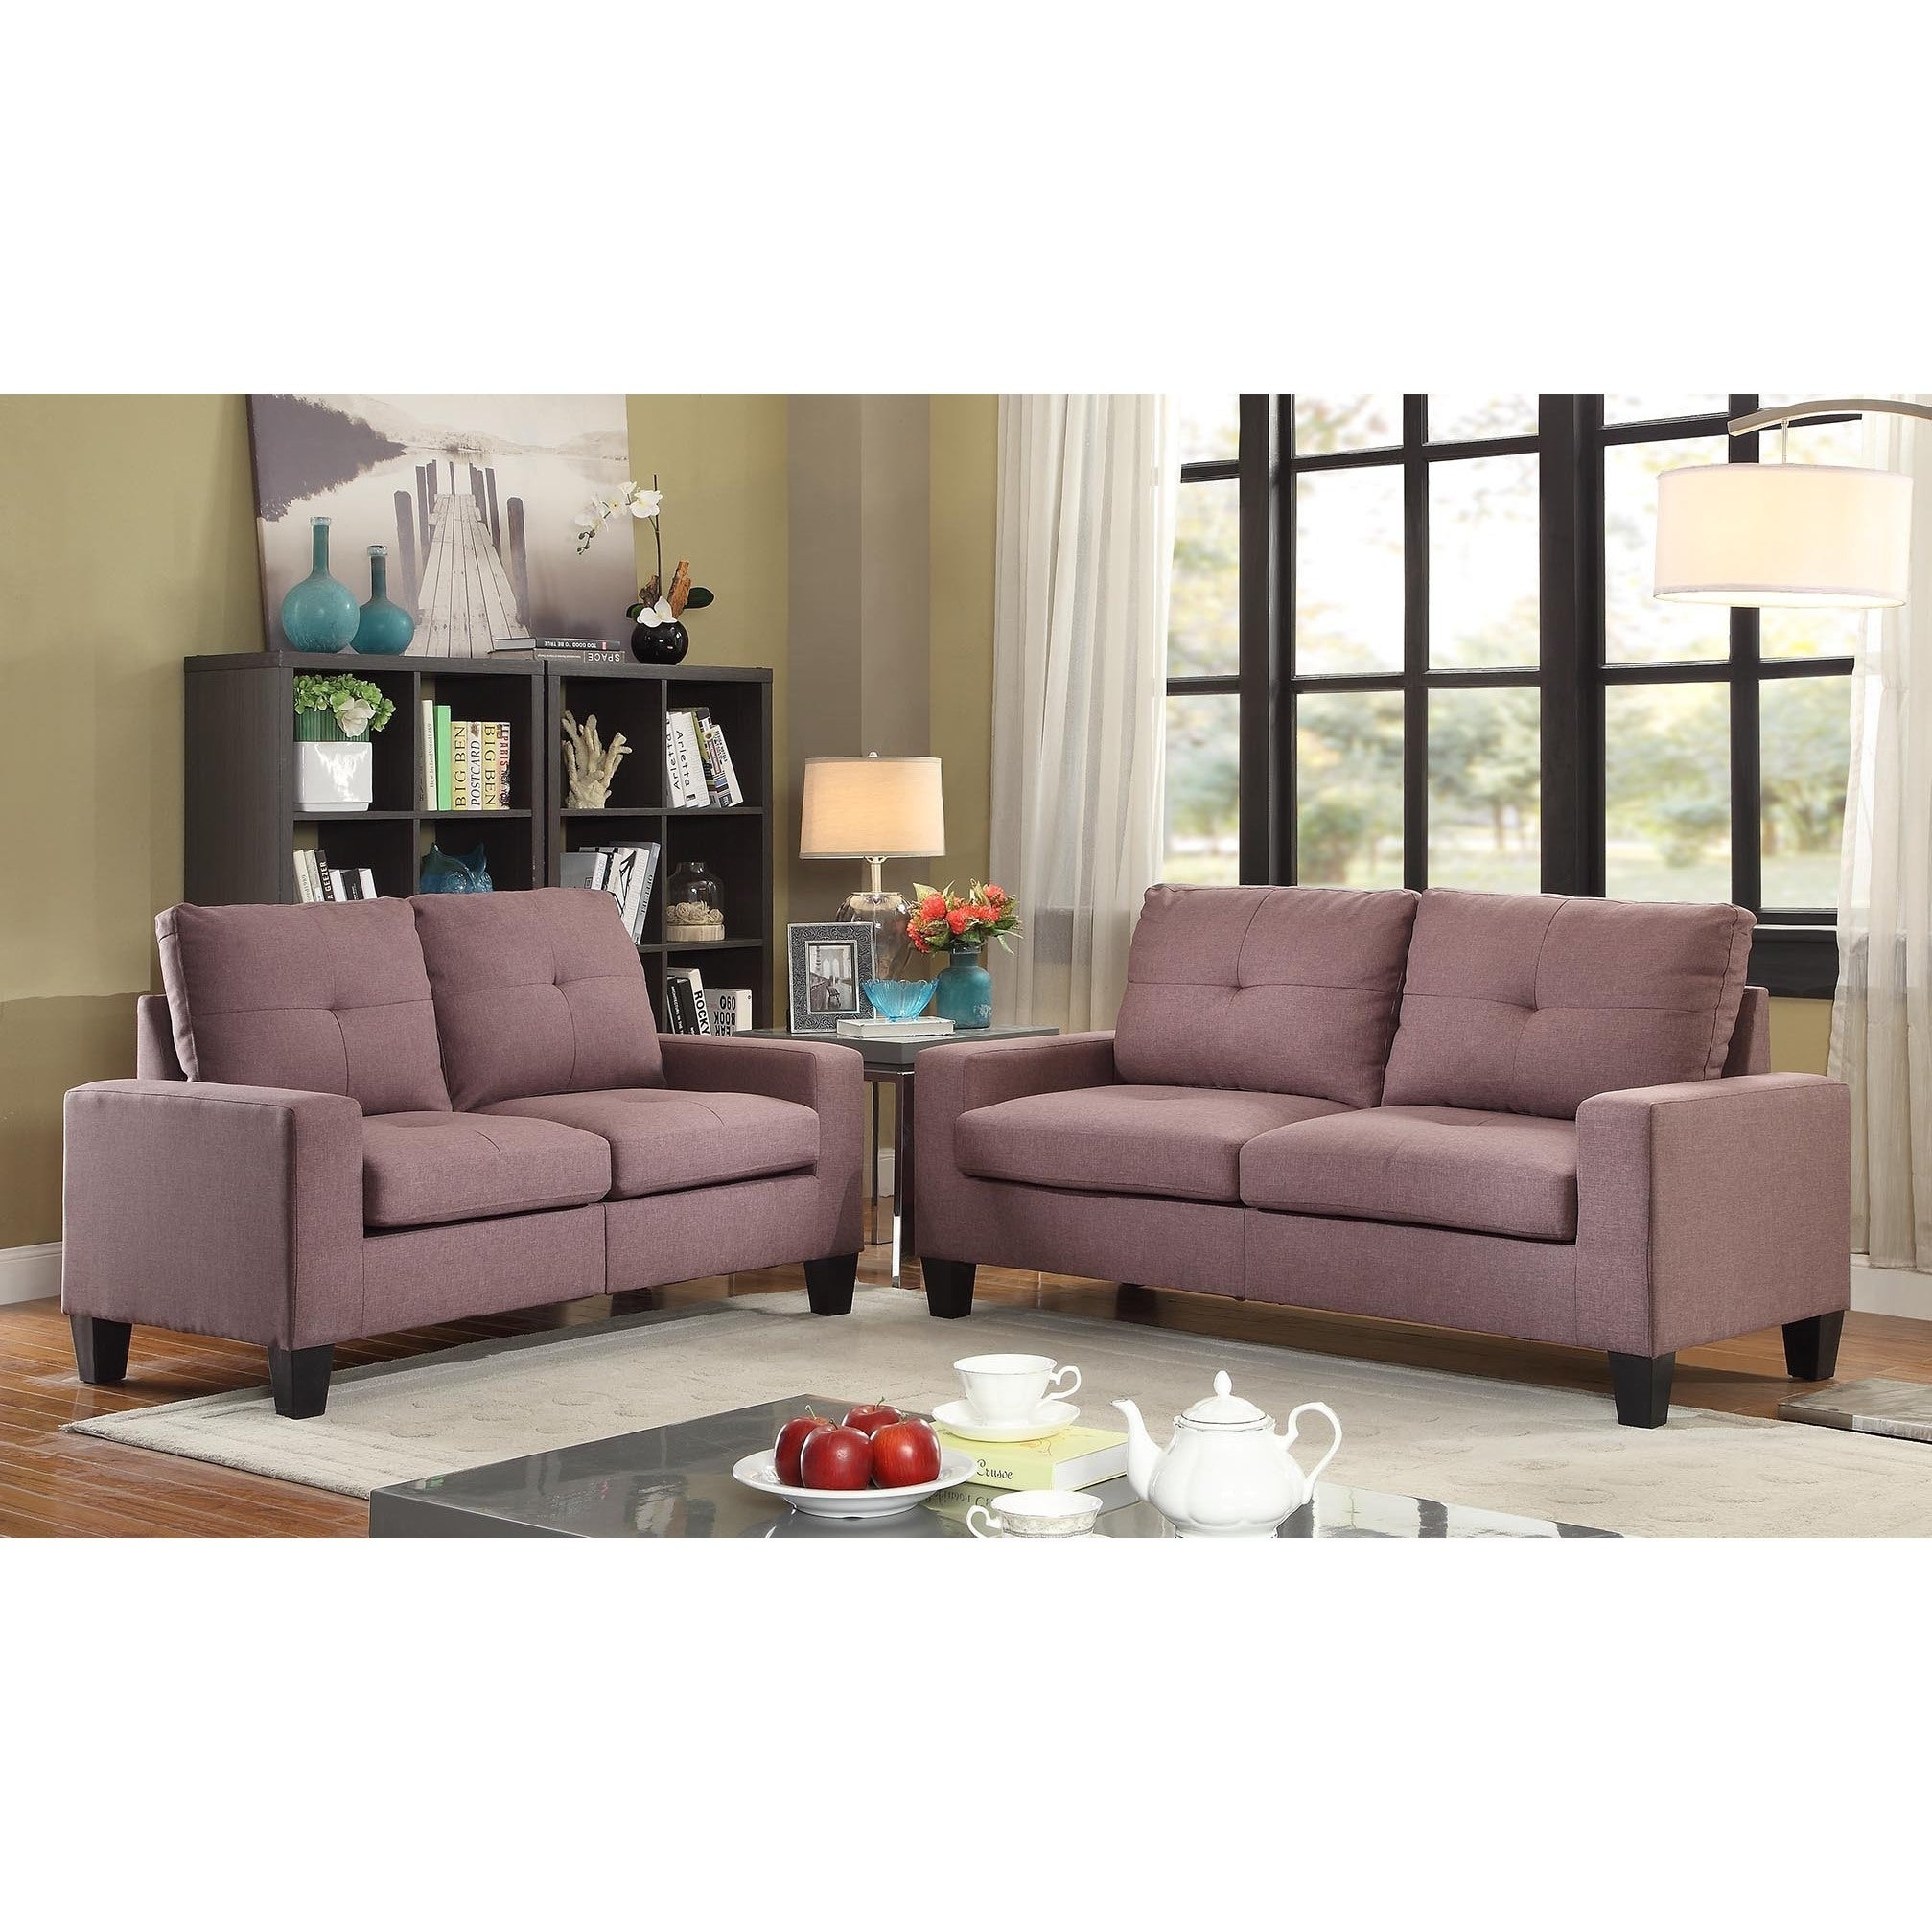 Acme Furniture Platinum II Sofa And Loveseat Living Room Set   Free  Shipping Today   Overstock.com   20918849